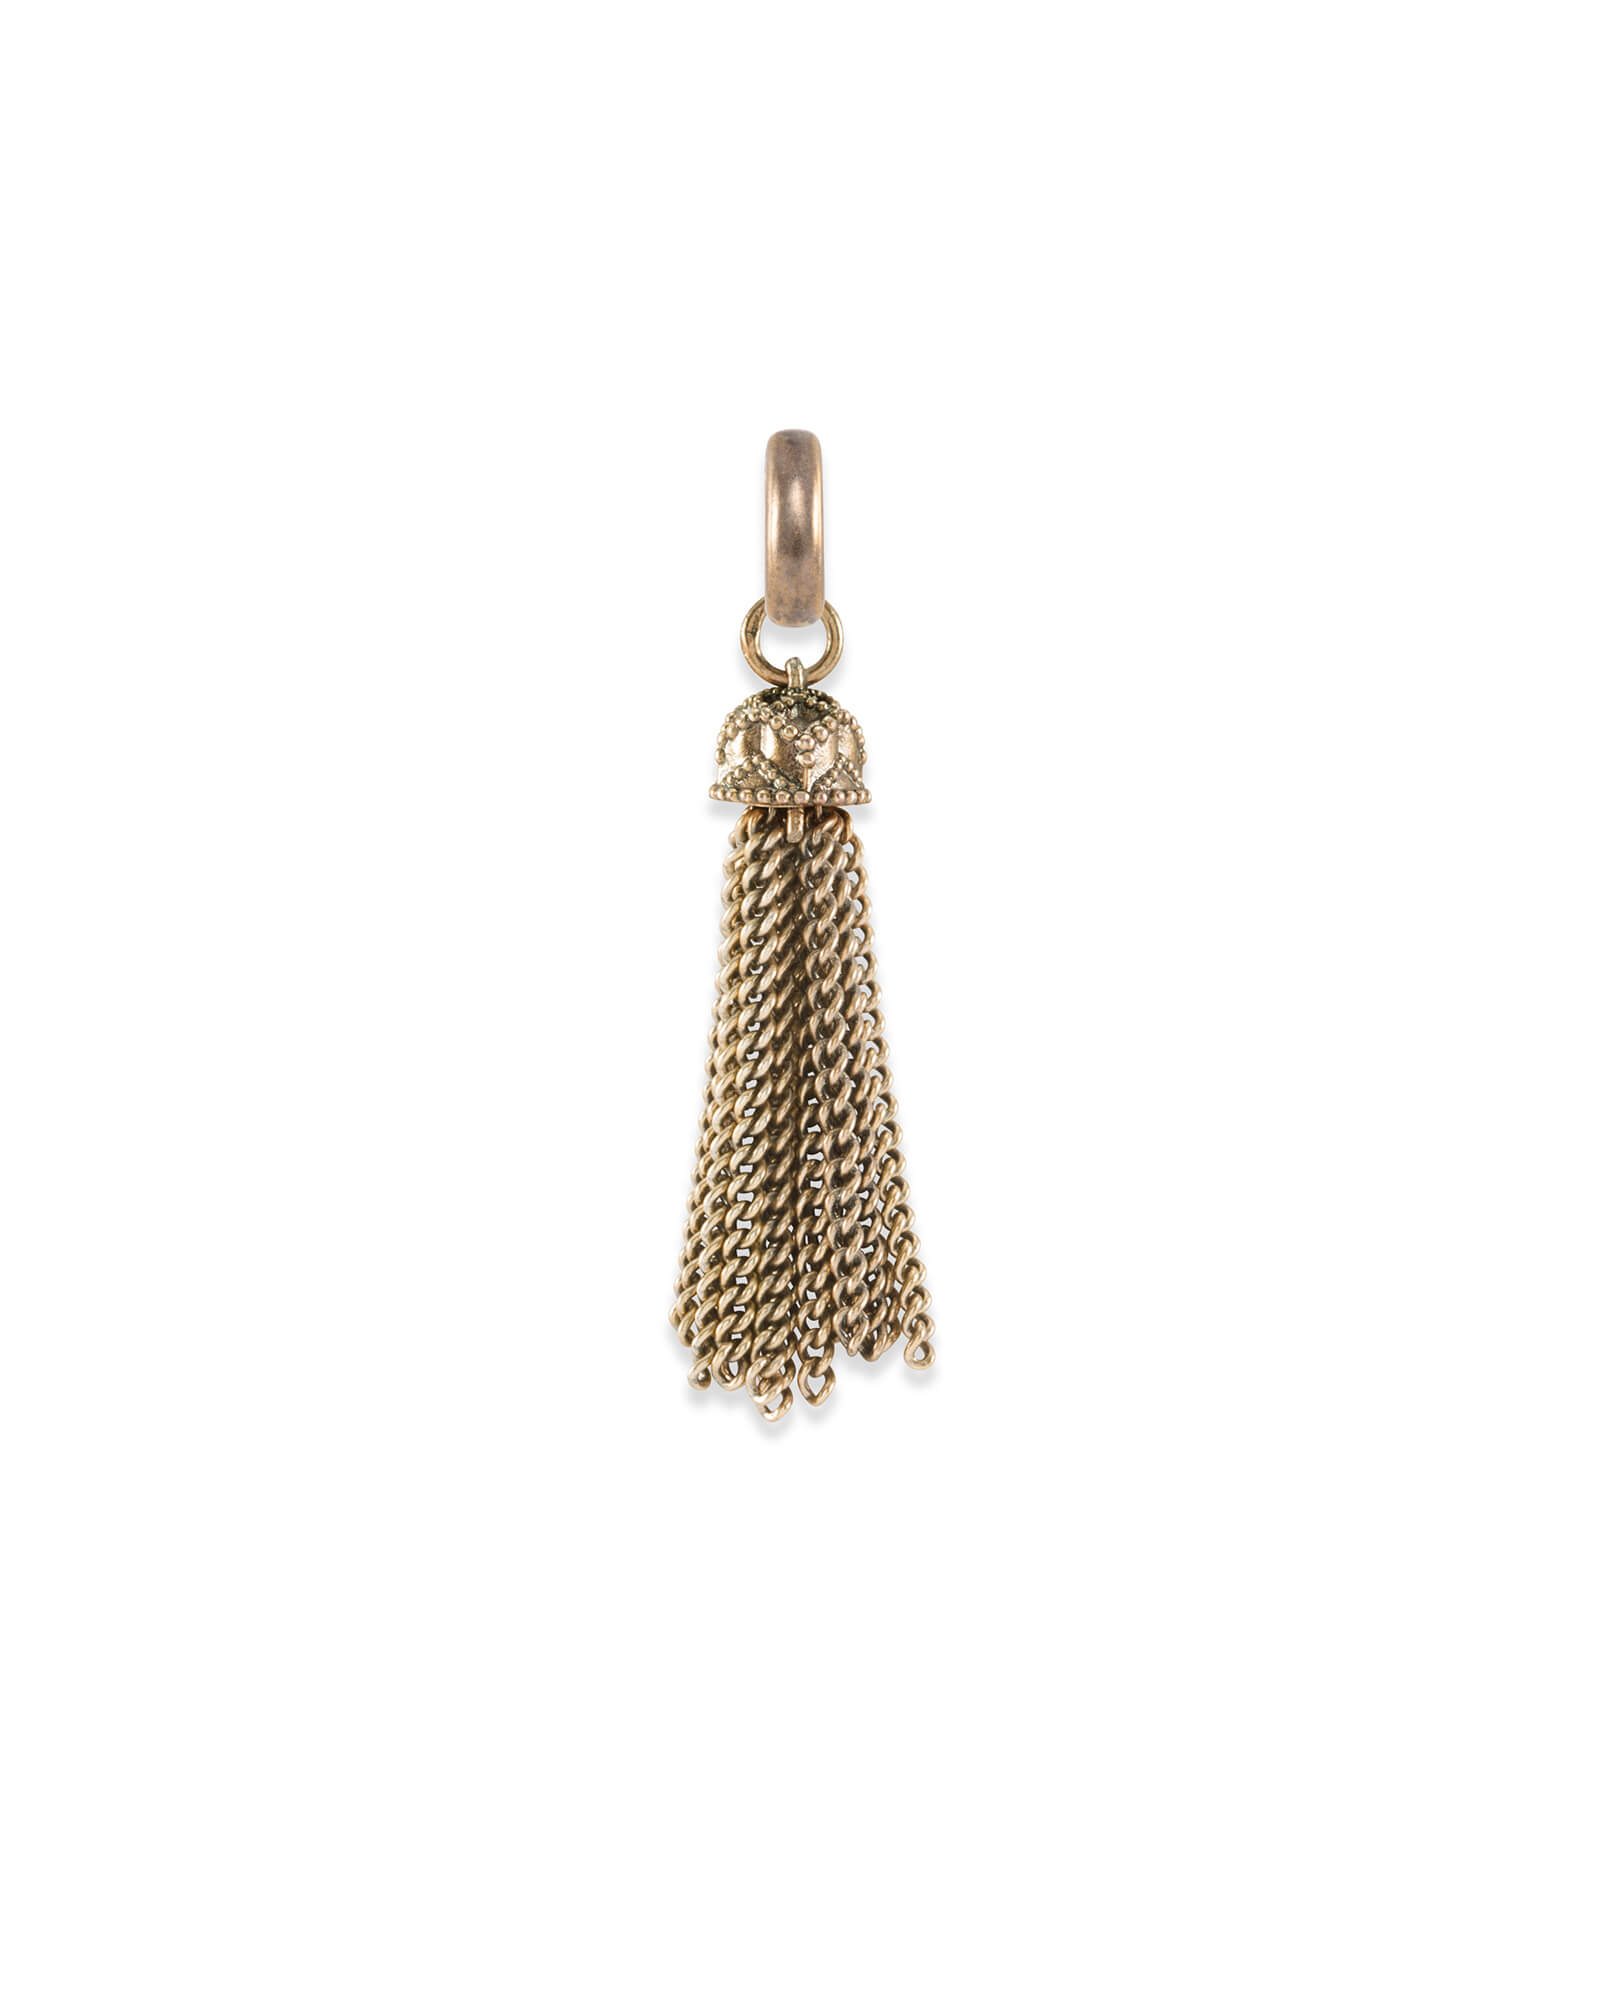 Small Tassel Charm in Vintage Gold